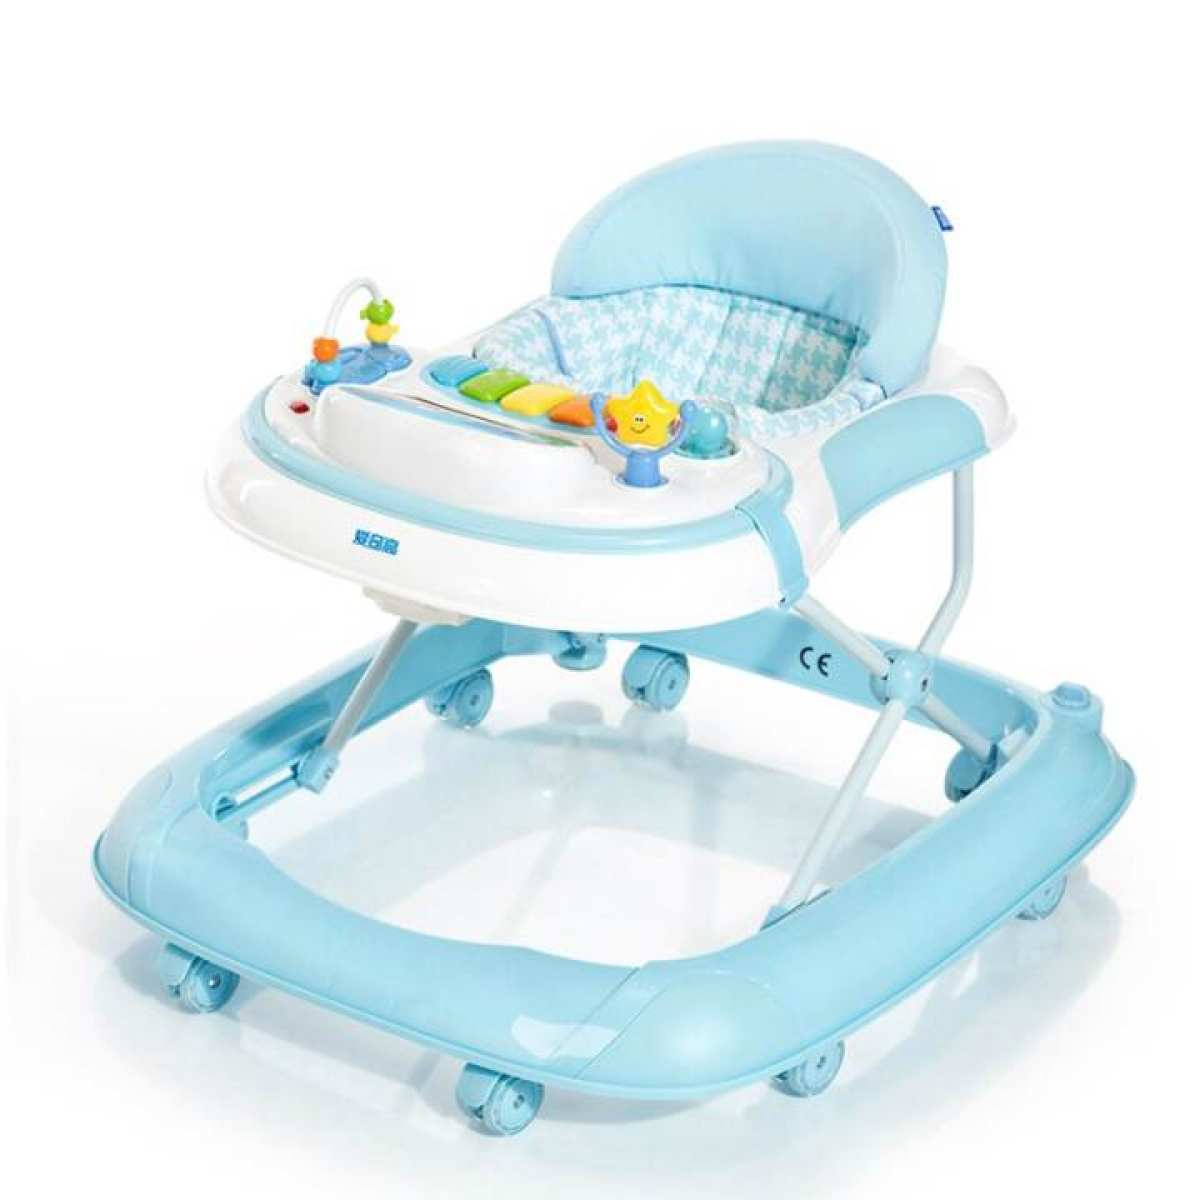 Baby walker colorful and music Walker for Kids - Multicolor High Quality And Best Product